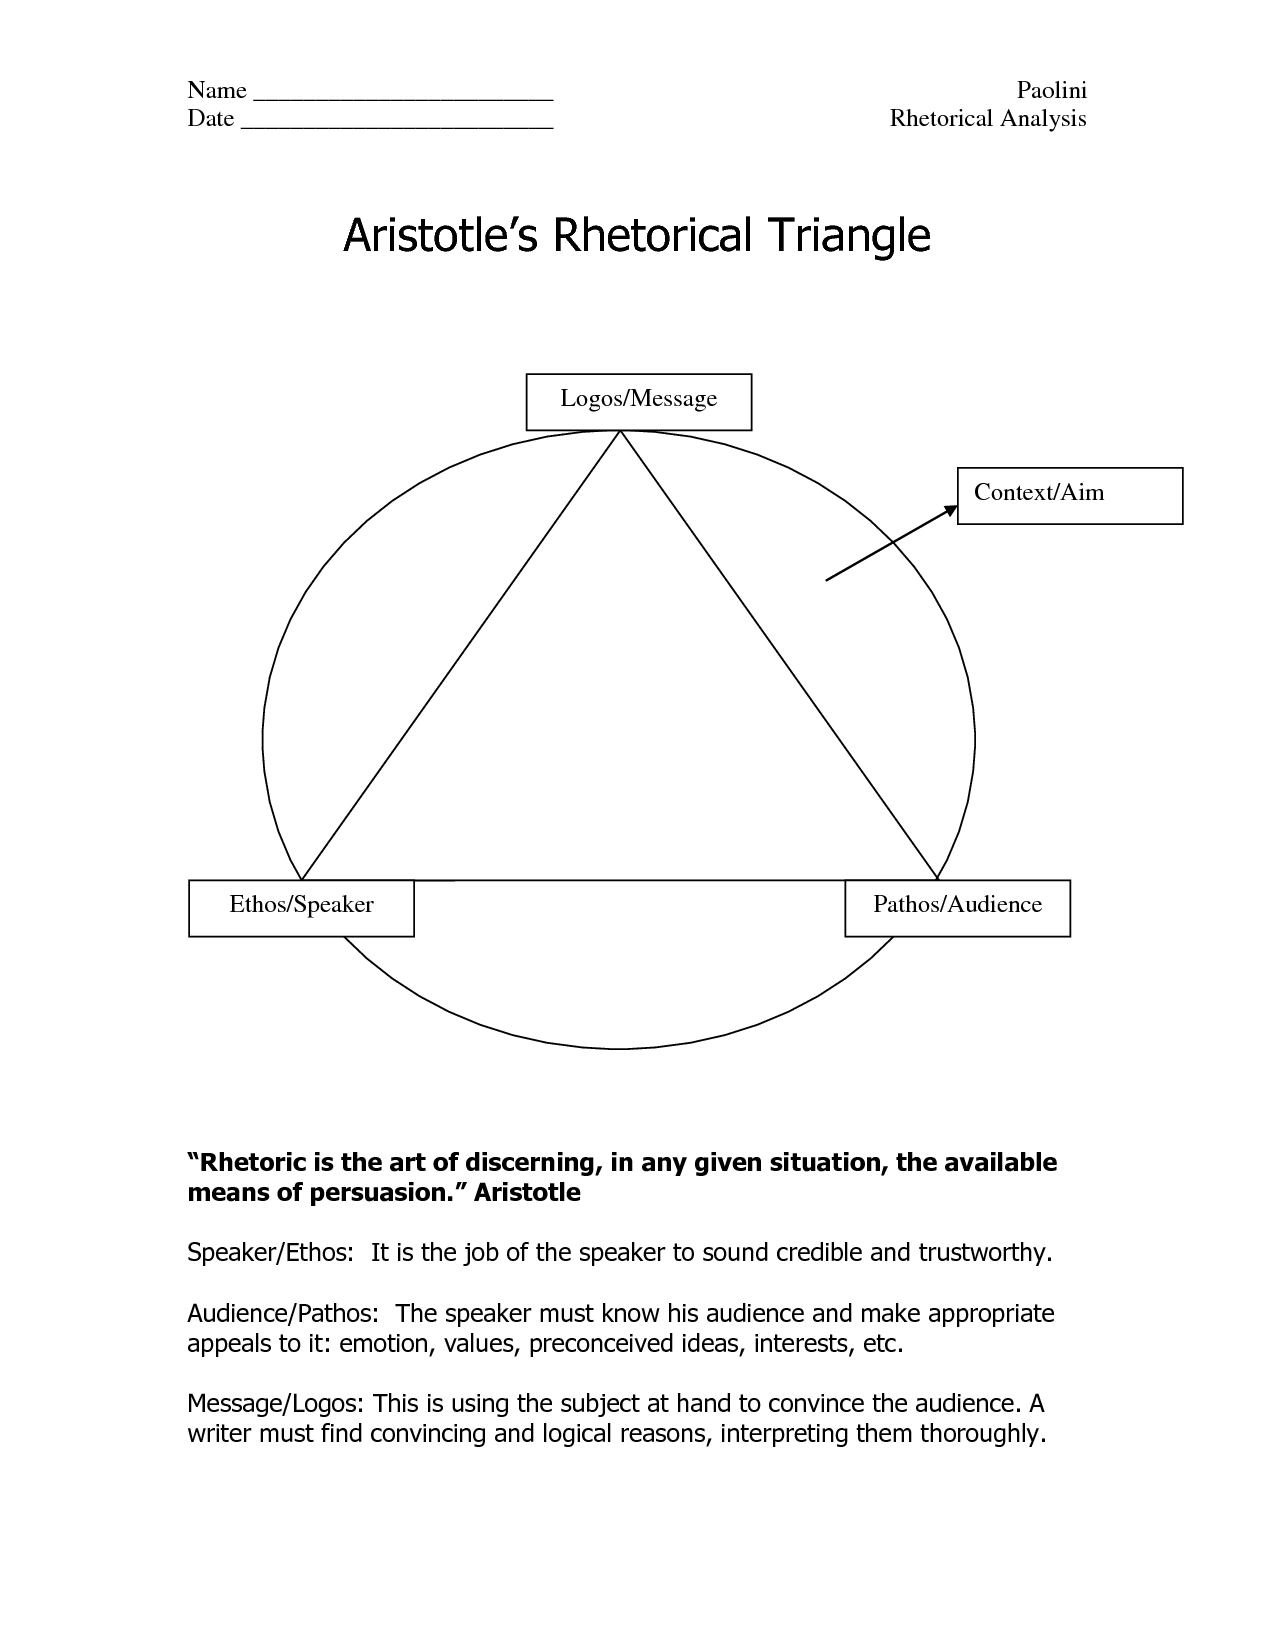 aristotle and rhetoric Aristotle's rhetoric has had an enormous influence on the development of the art  of rhetoric not only authors writing in the peripatetic tradition,.